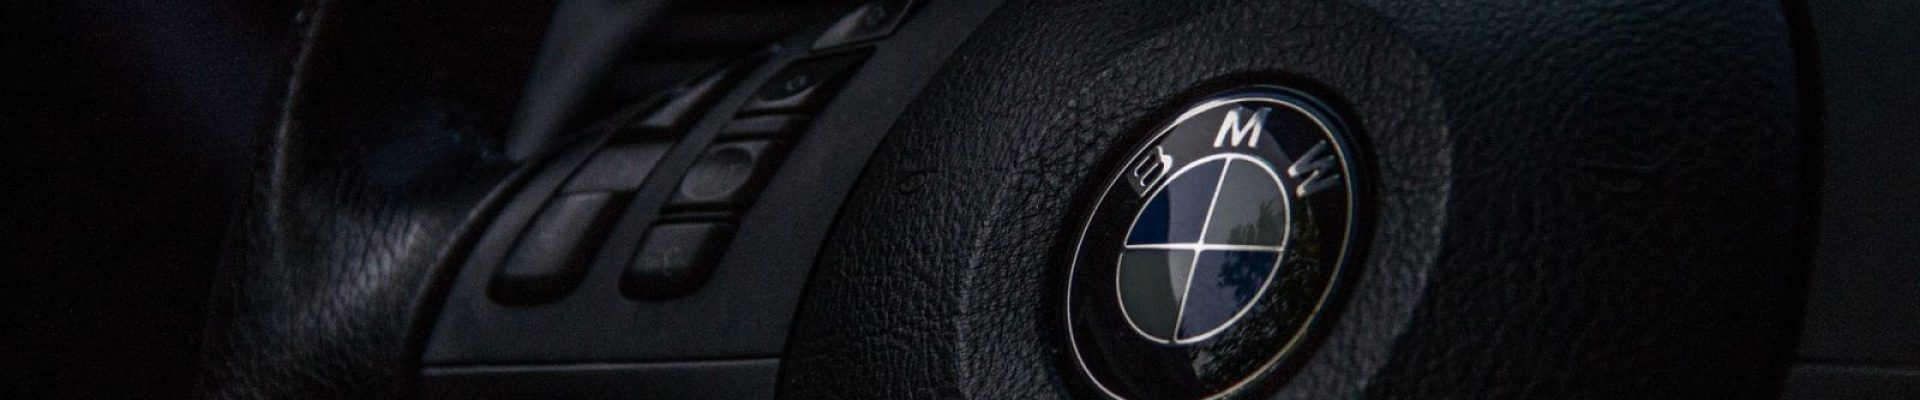 BMW car battery banner 1